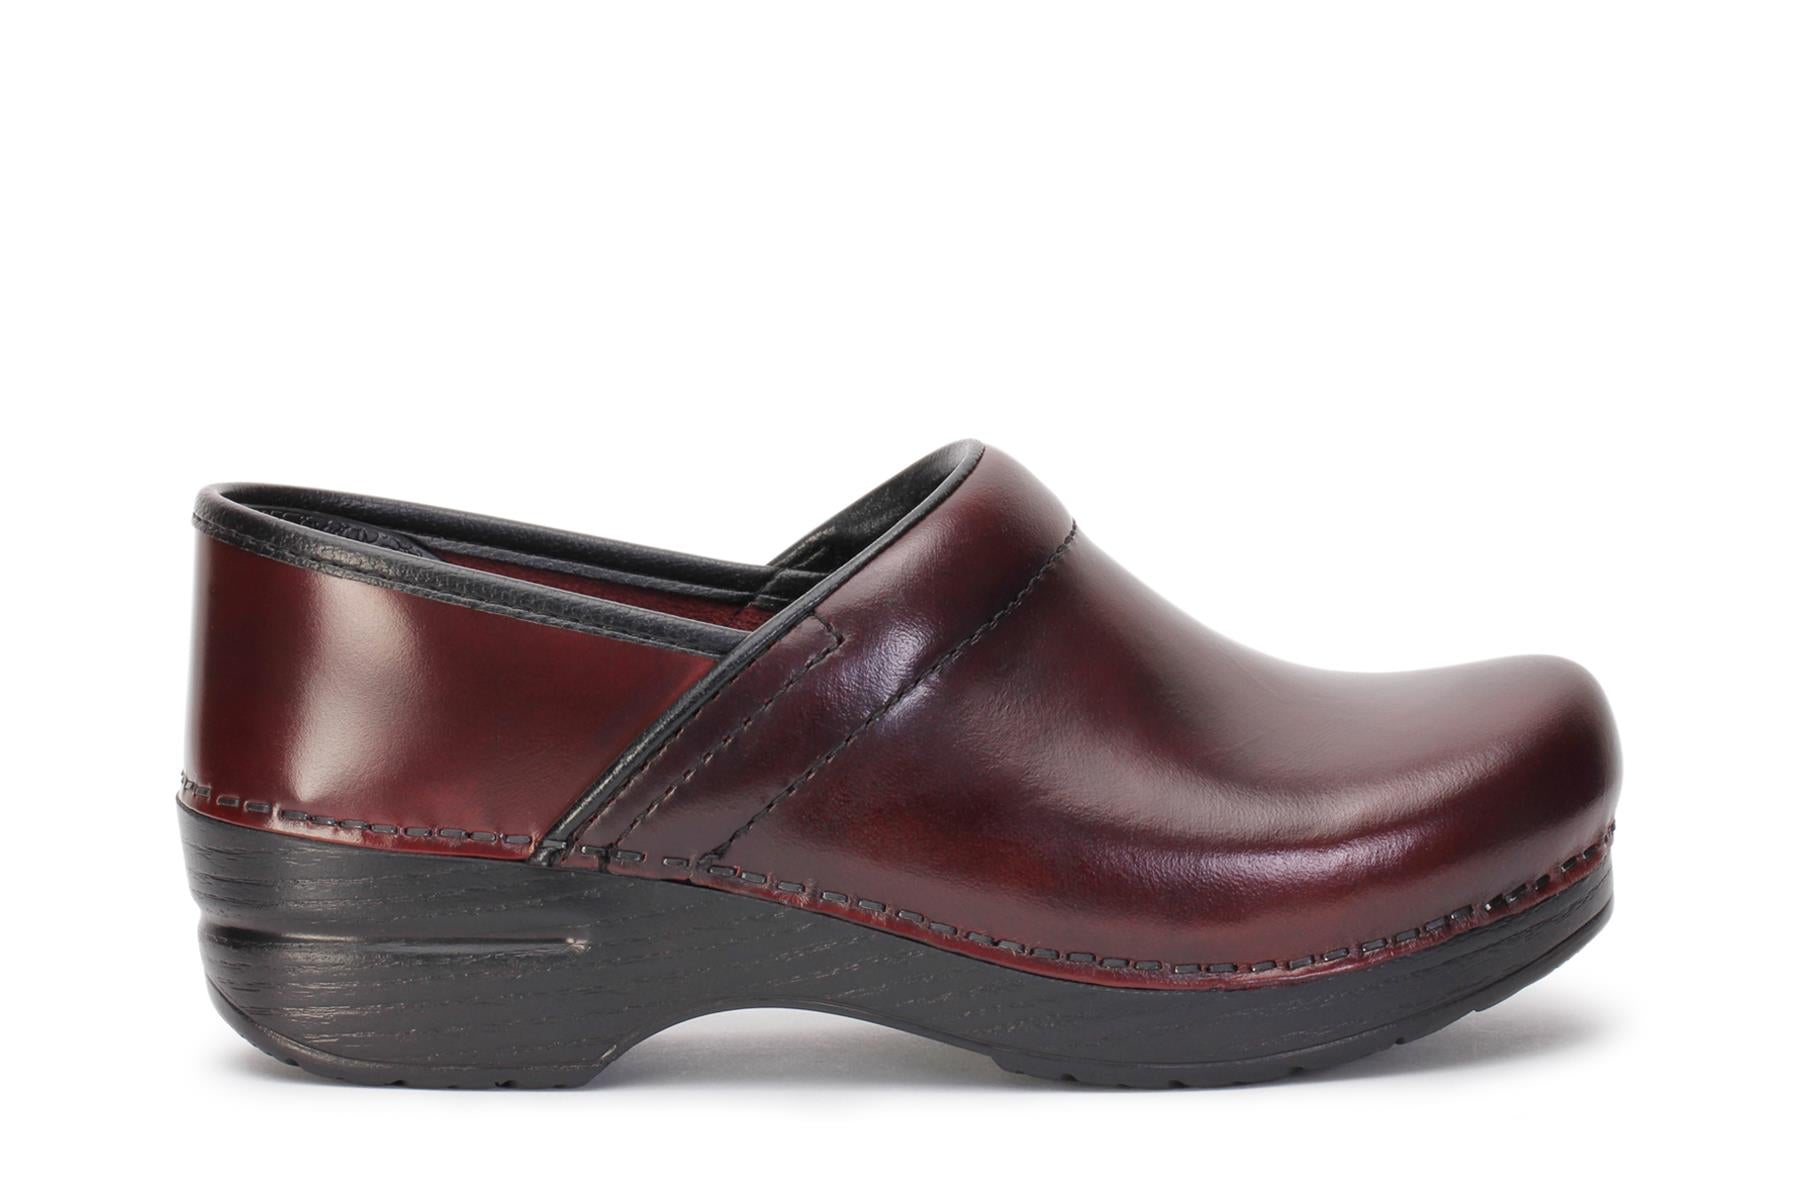 dansko-womens-clog-shoes-professional-cordovan-cabrio-leahter-806810202-main